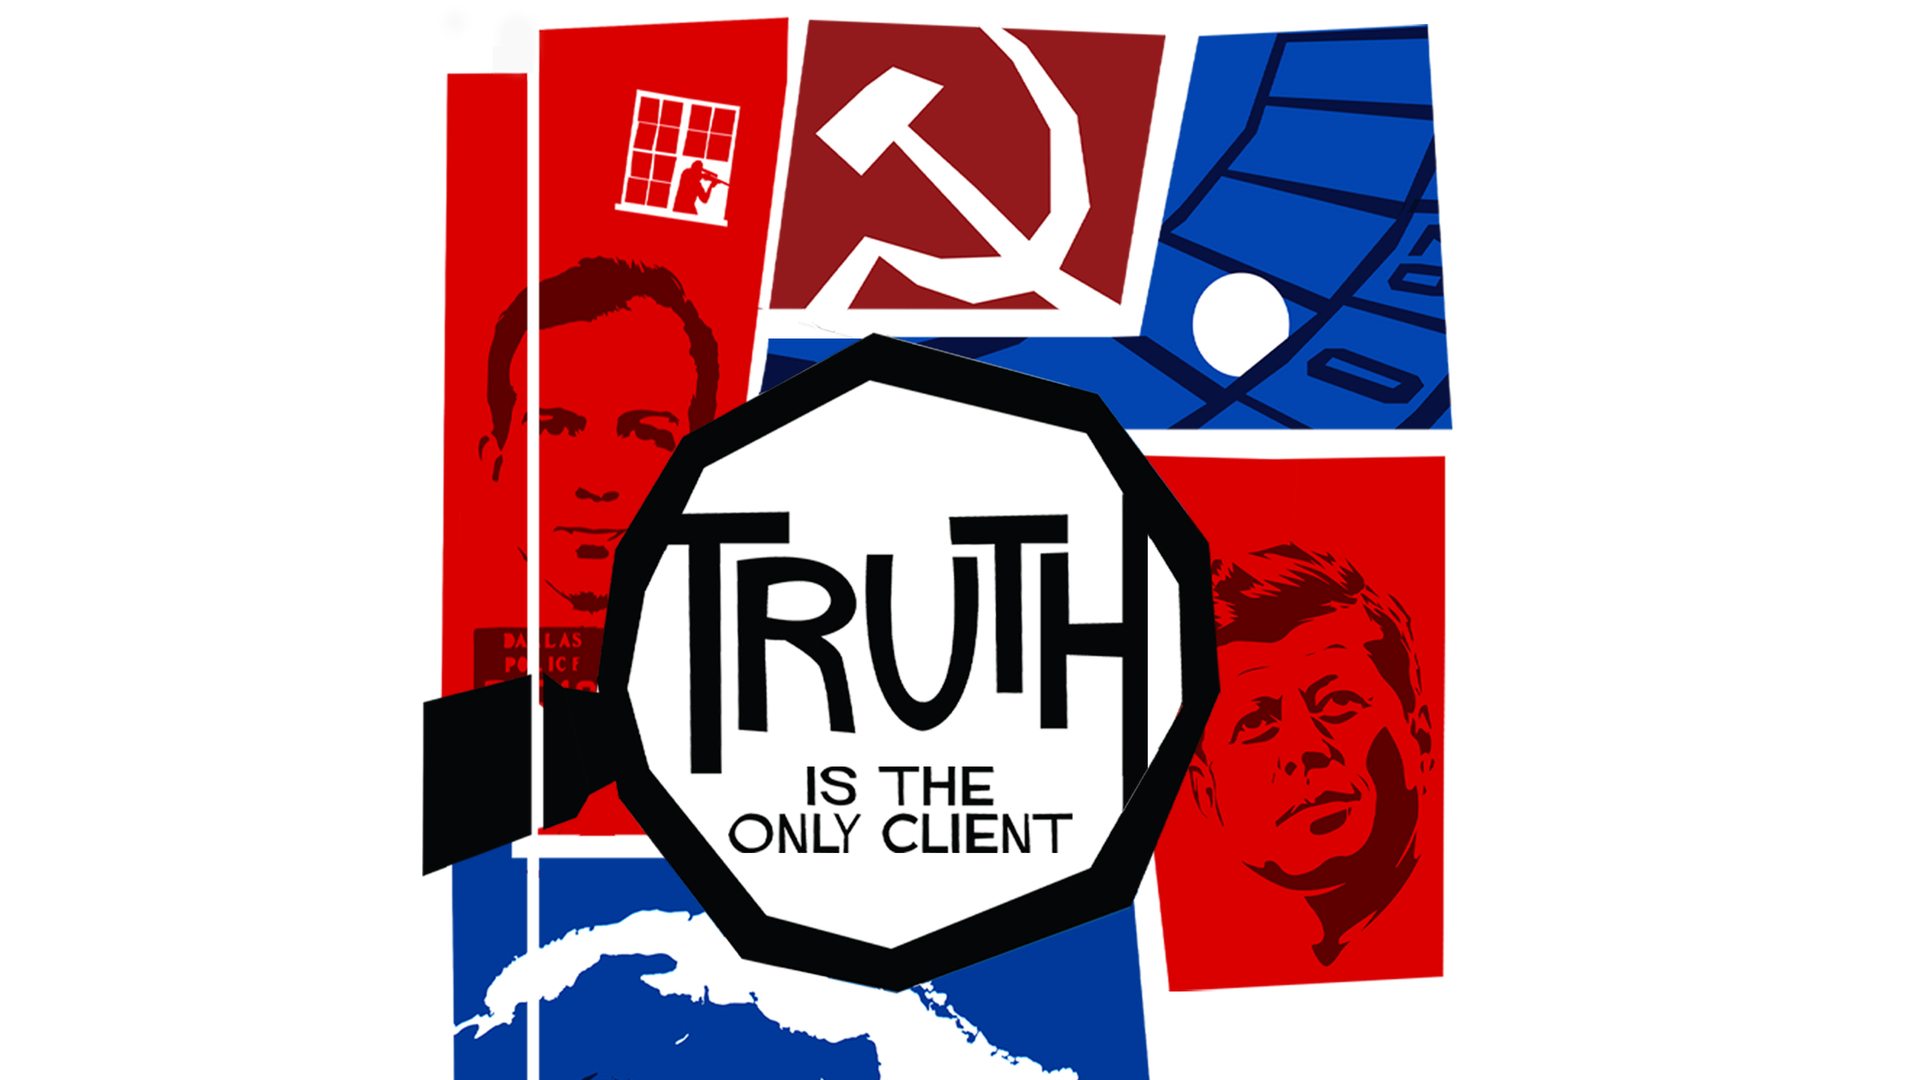 Truth is the Only Client